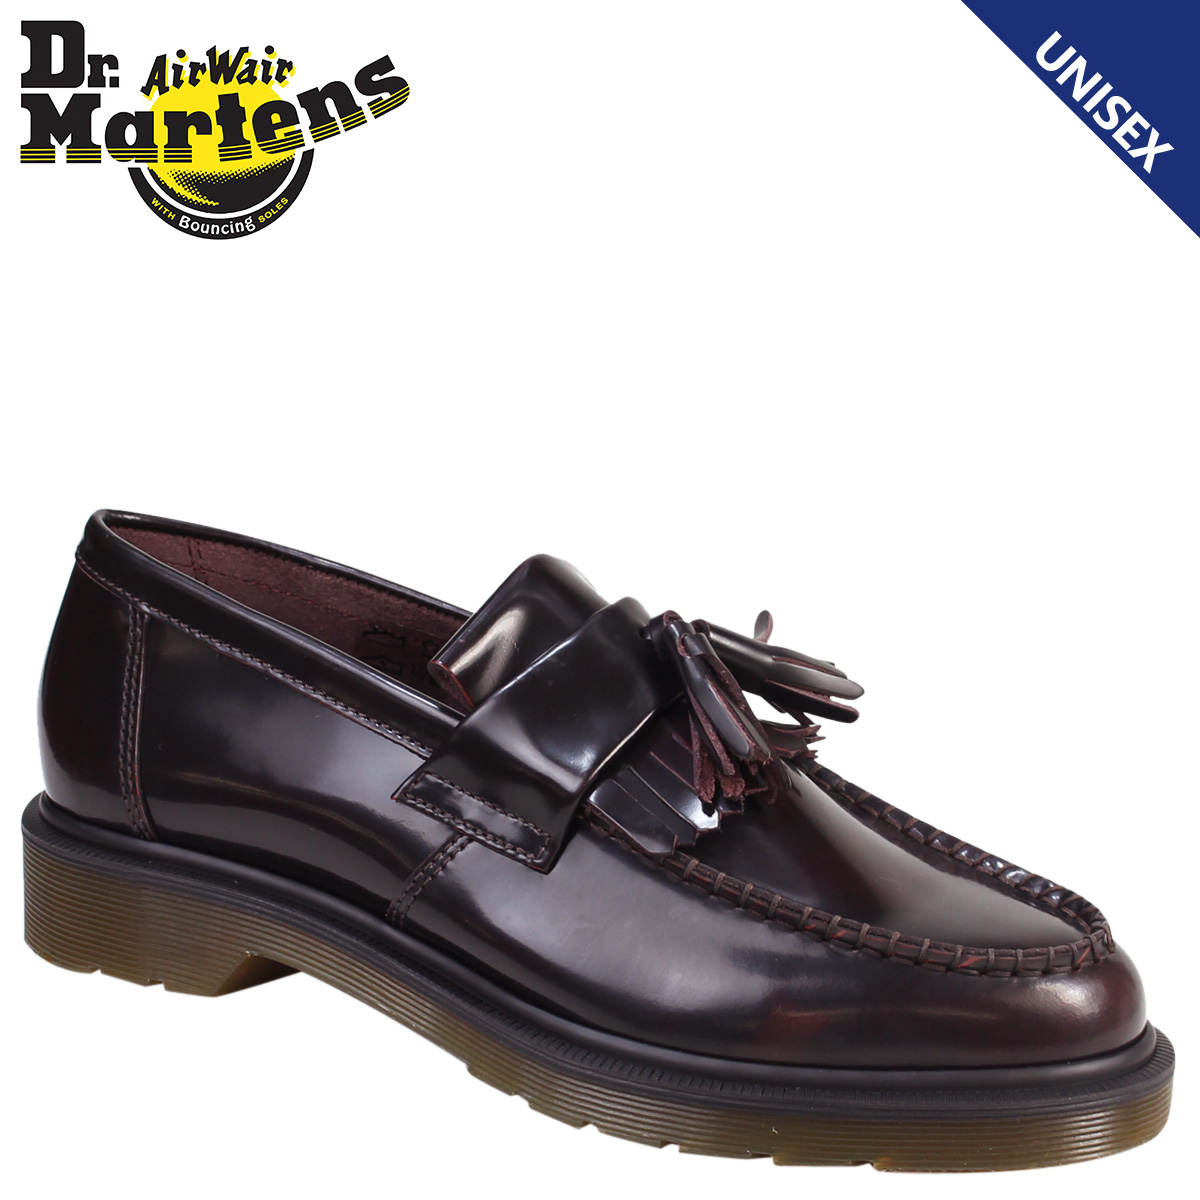 7b7c812894e Dr. Martens Dr.Martens tassel loafer R14573601 ADRIAN smooth leather mens  Womens BURGUNDY